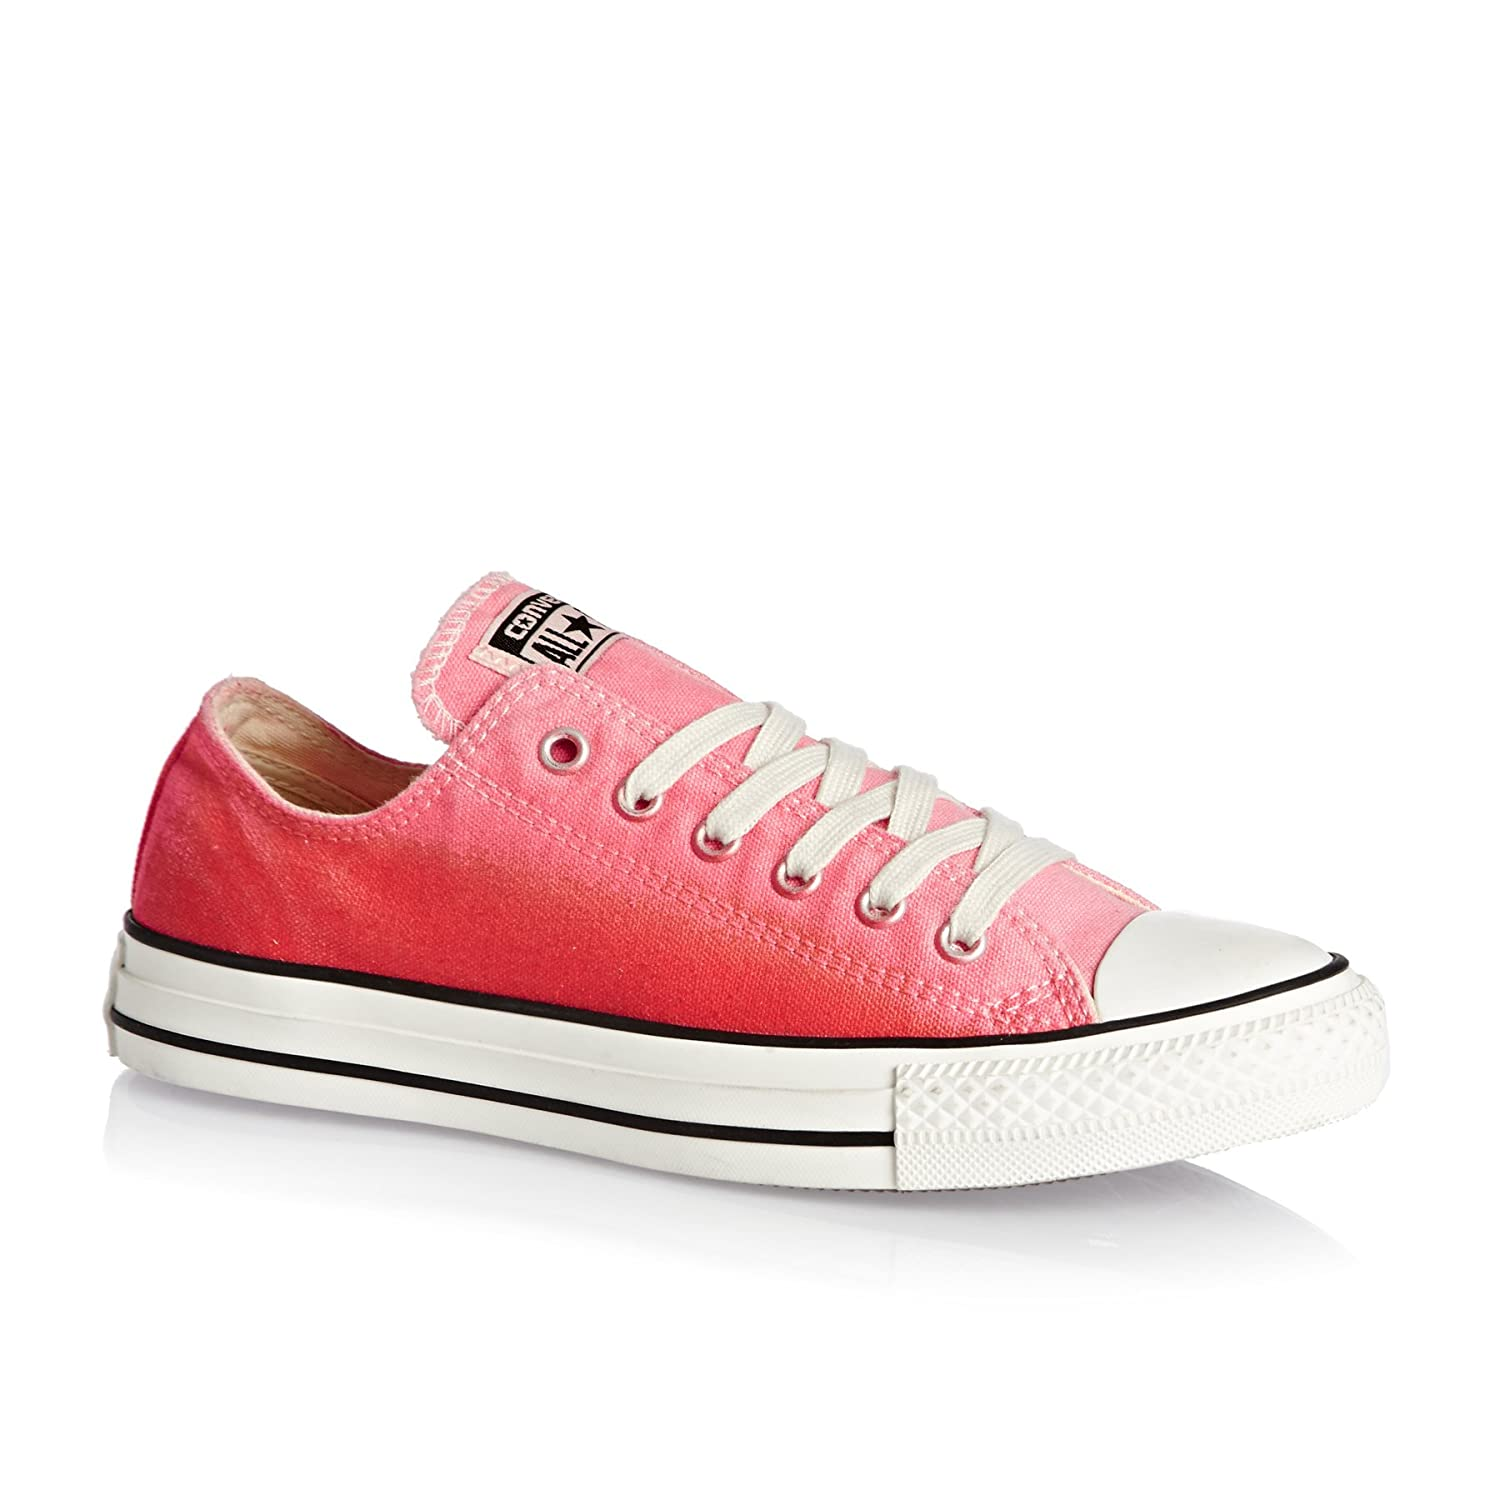 Converse 151266, Homme Baskets pour Homme Light Daybreak Pink/Brake Converse Light 5383268 - gis9ma7le.space